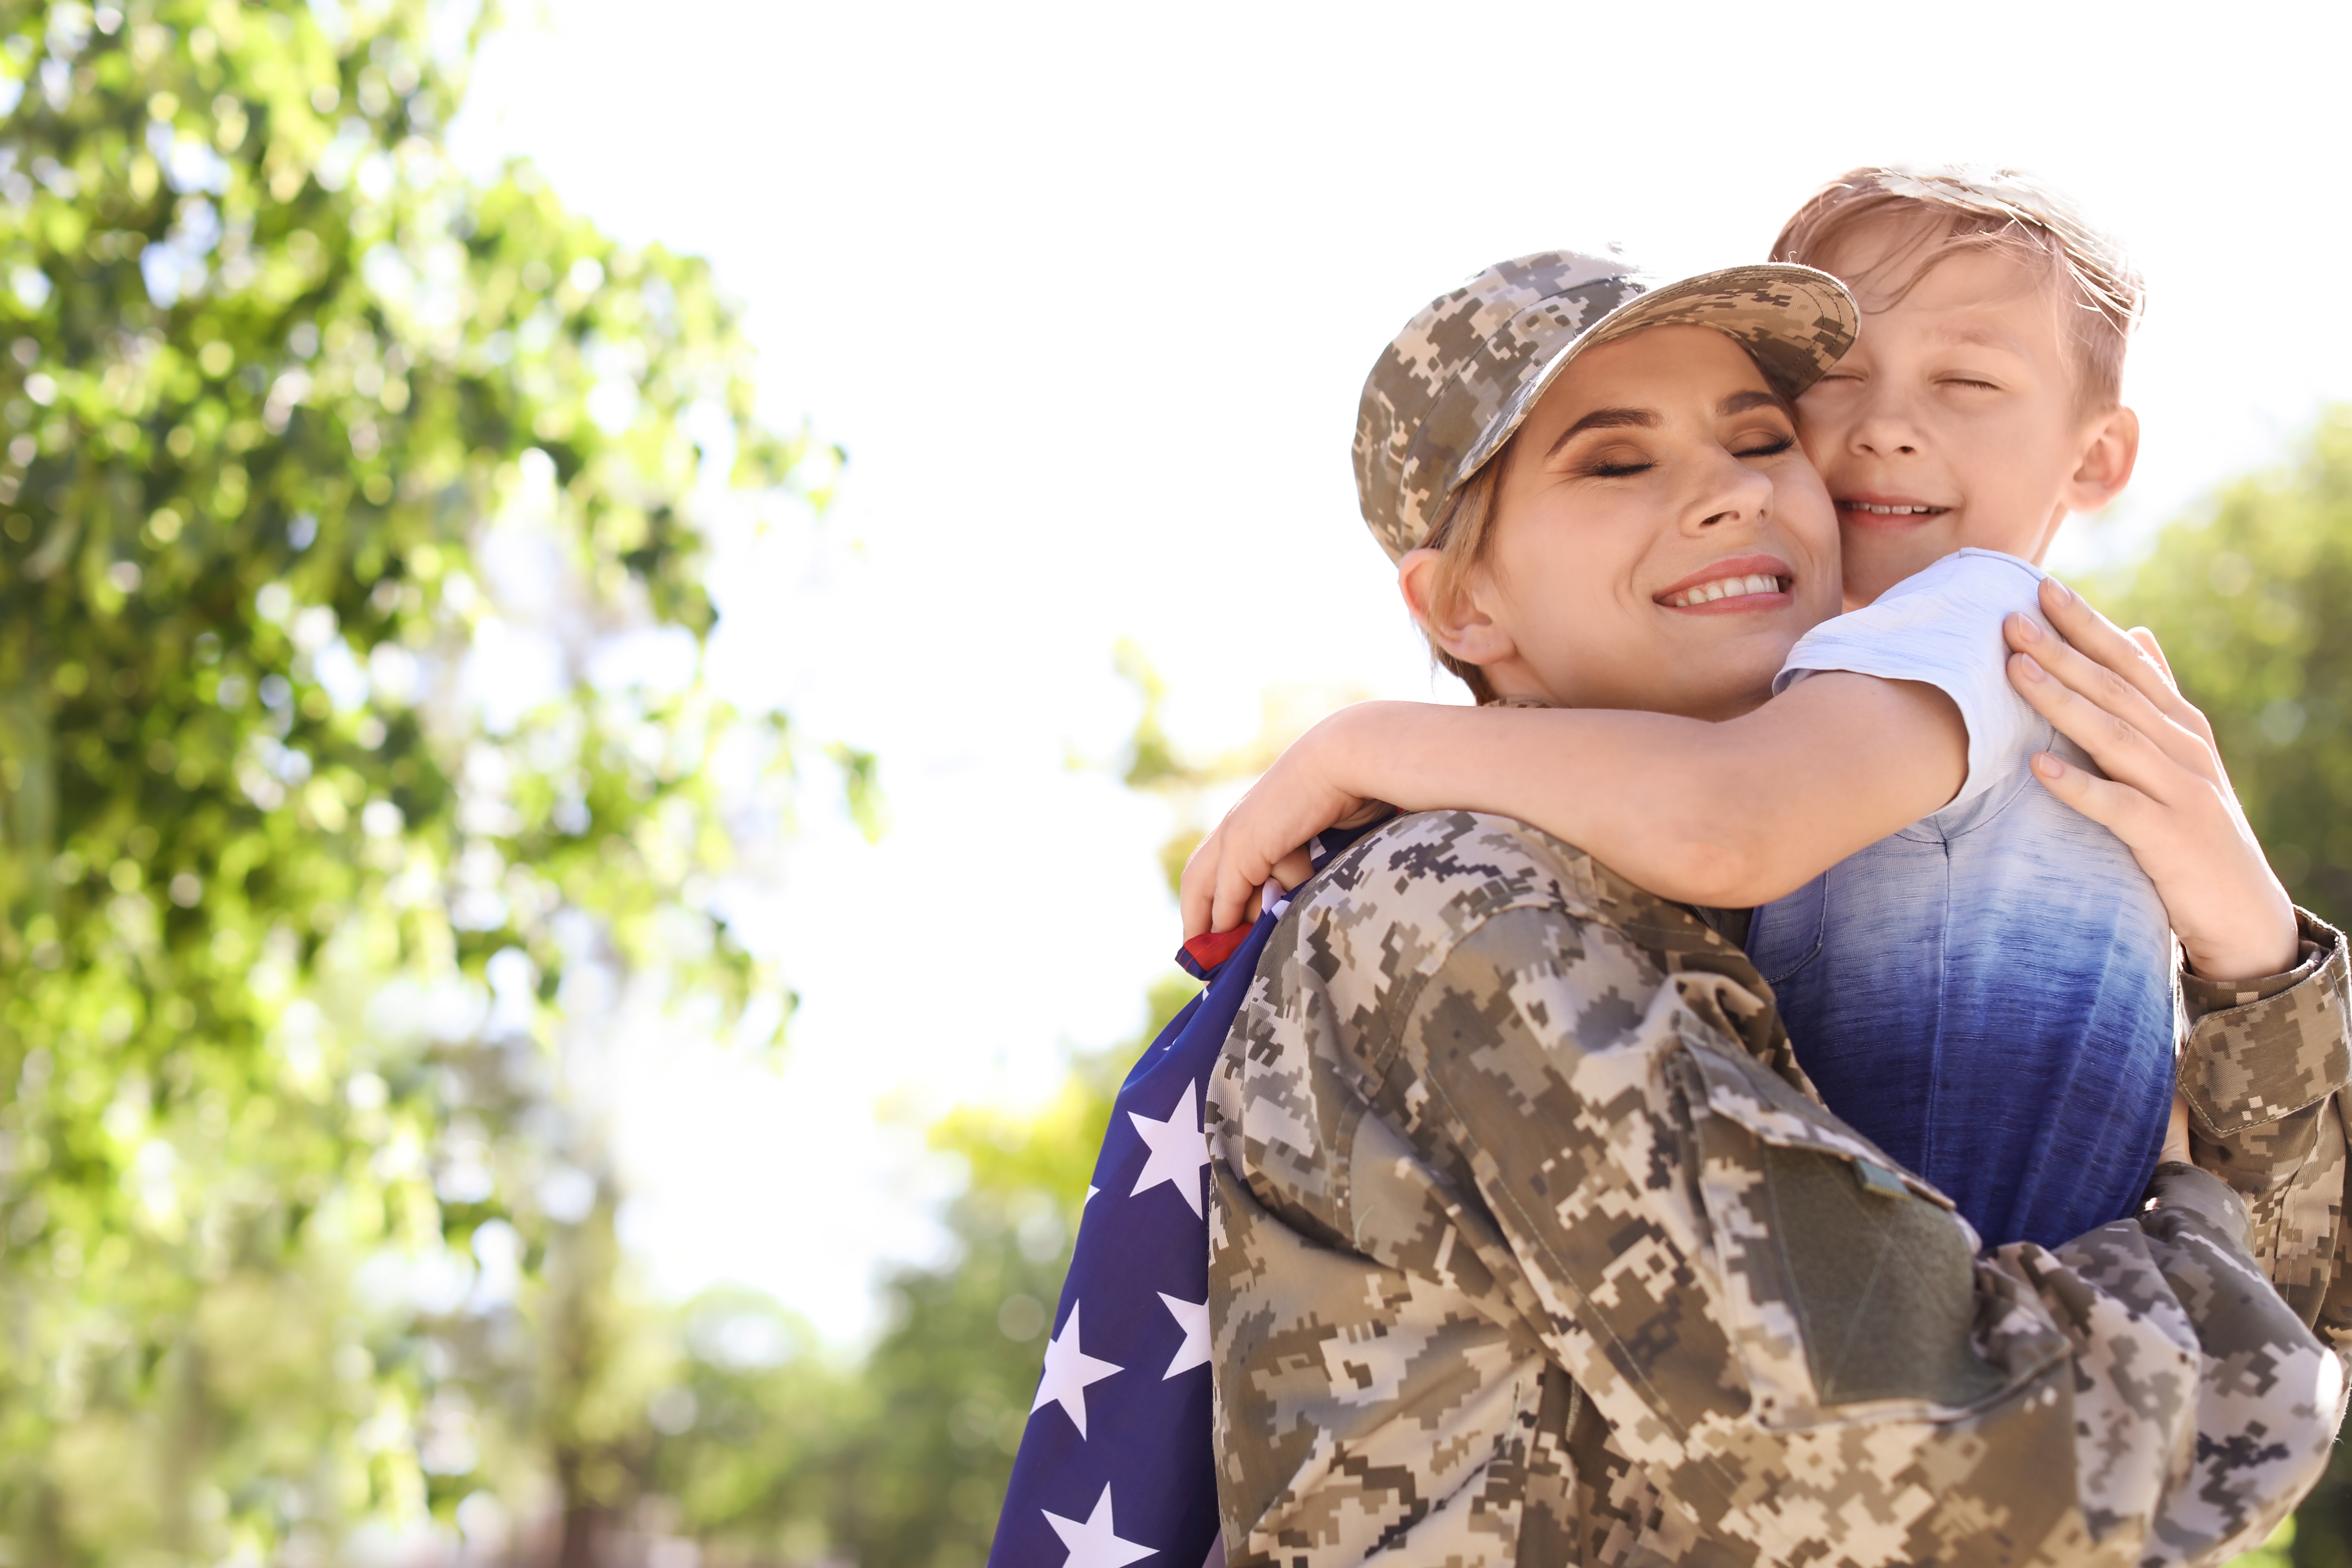 military soldier, military mom, military and family relationships, military and community, military and yoga